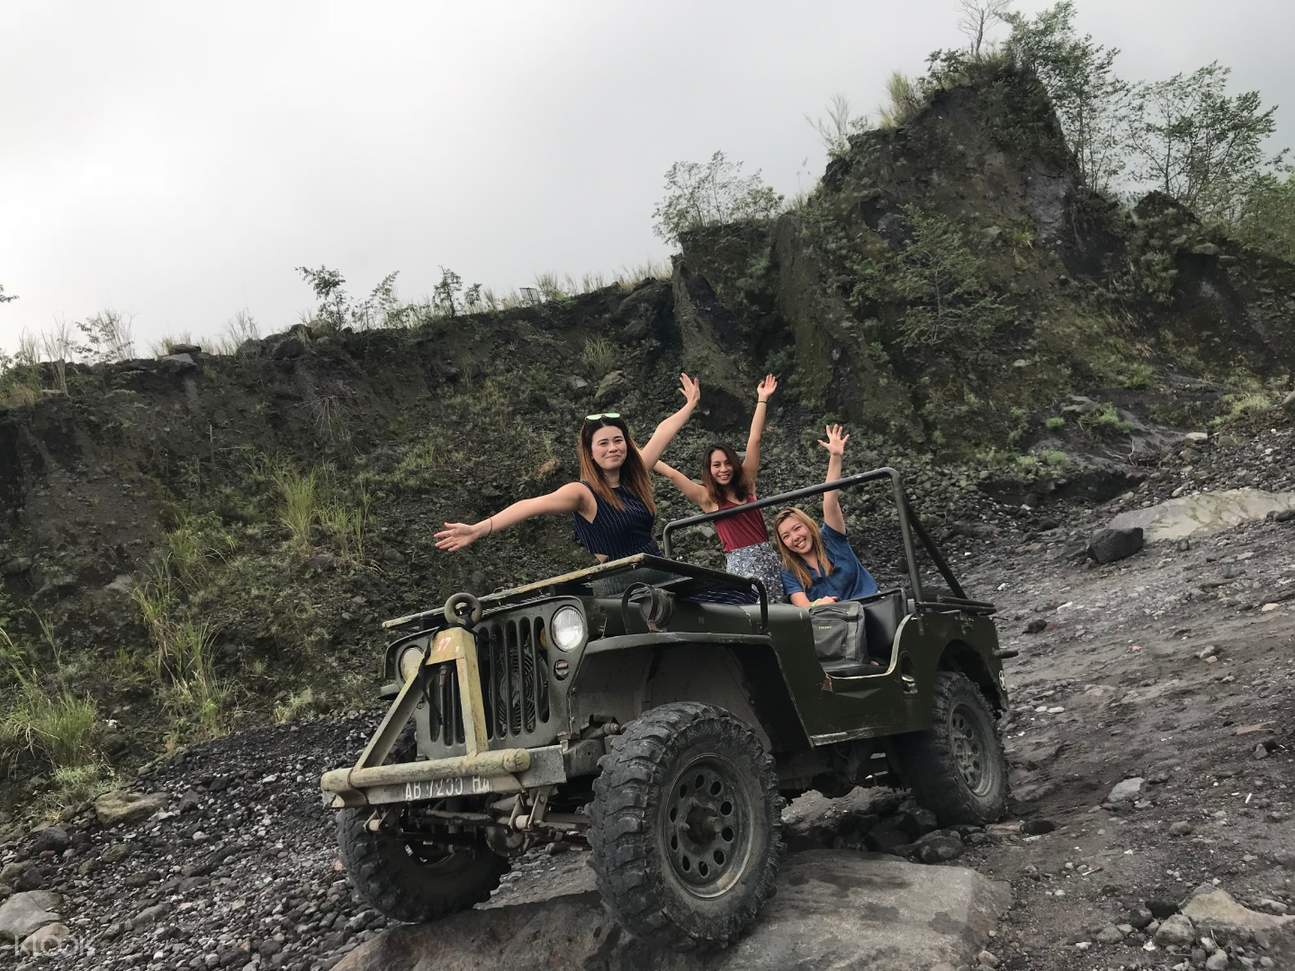 tourists posing on the jeep